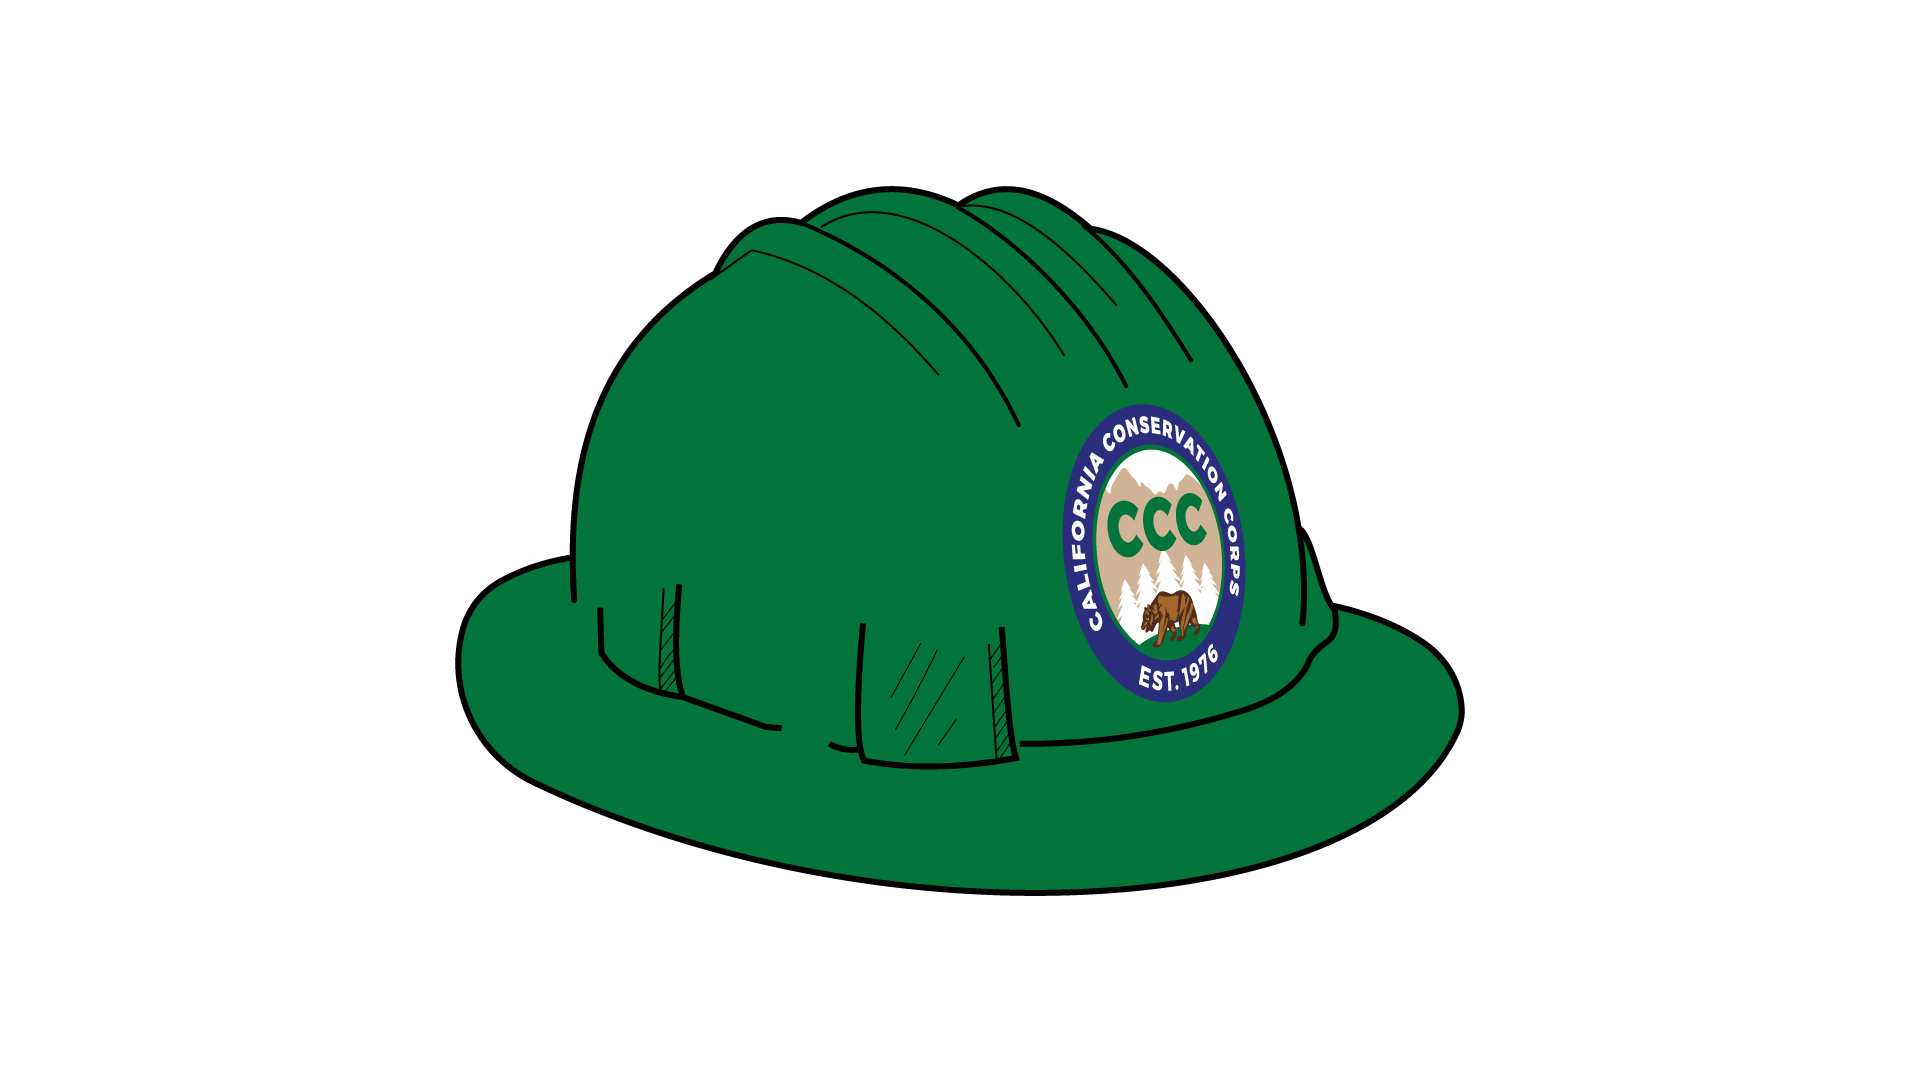 Graphic of a green hard hat with the CCC logo on the front.